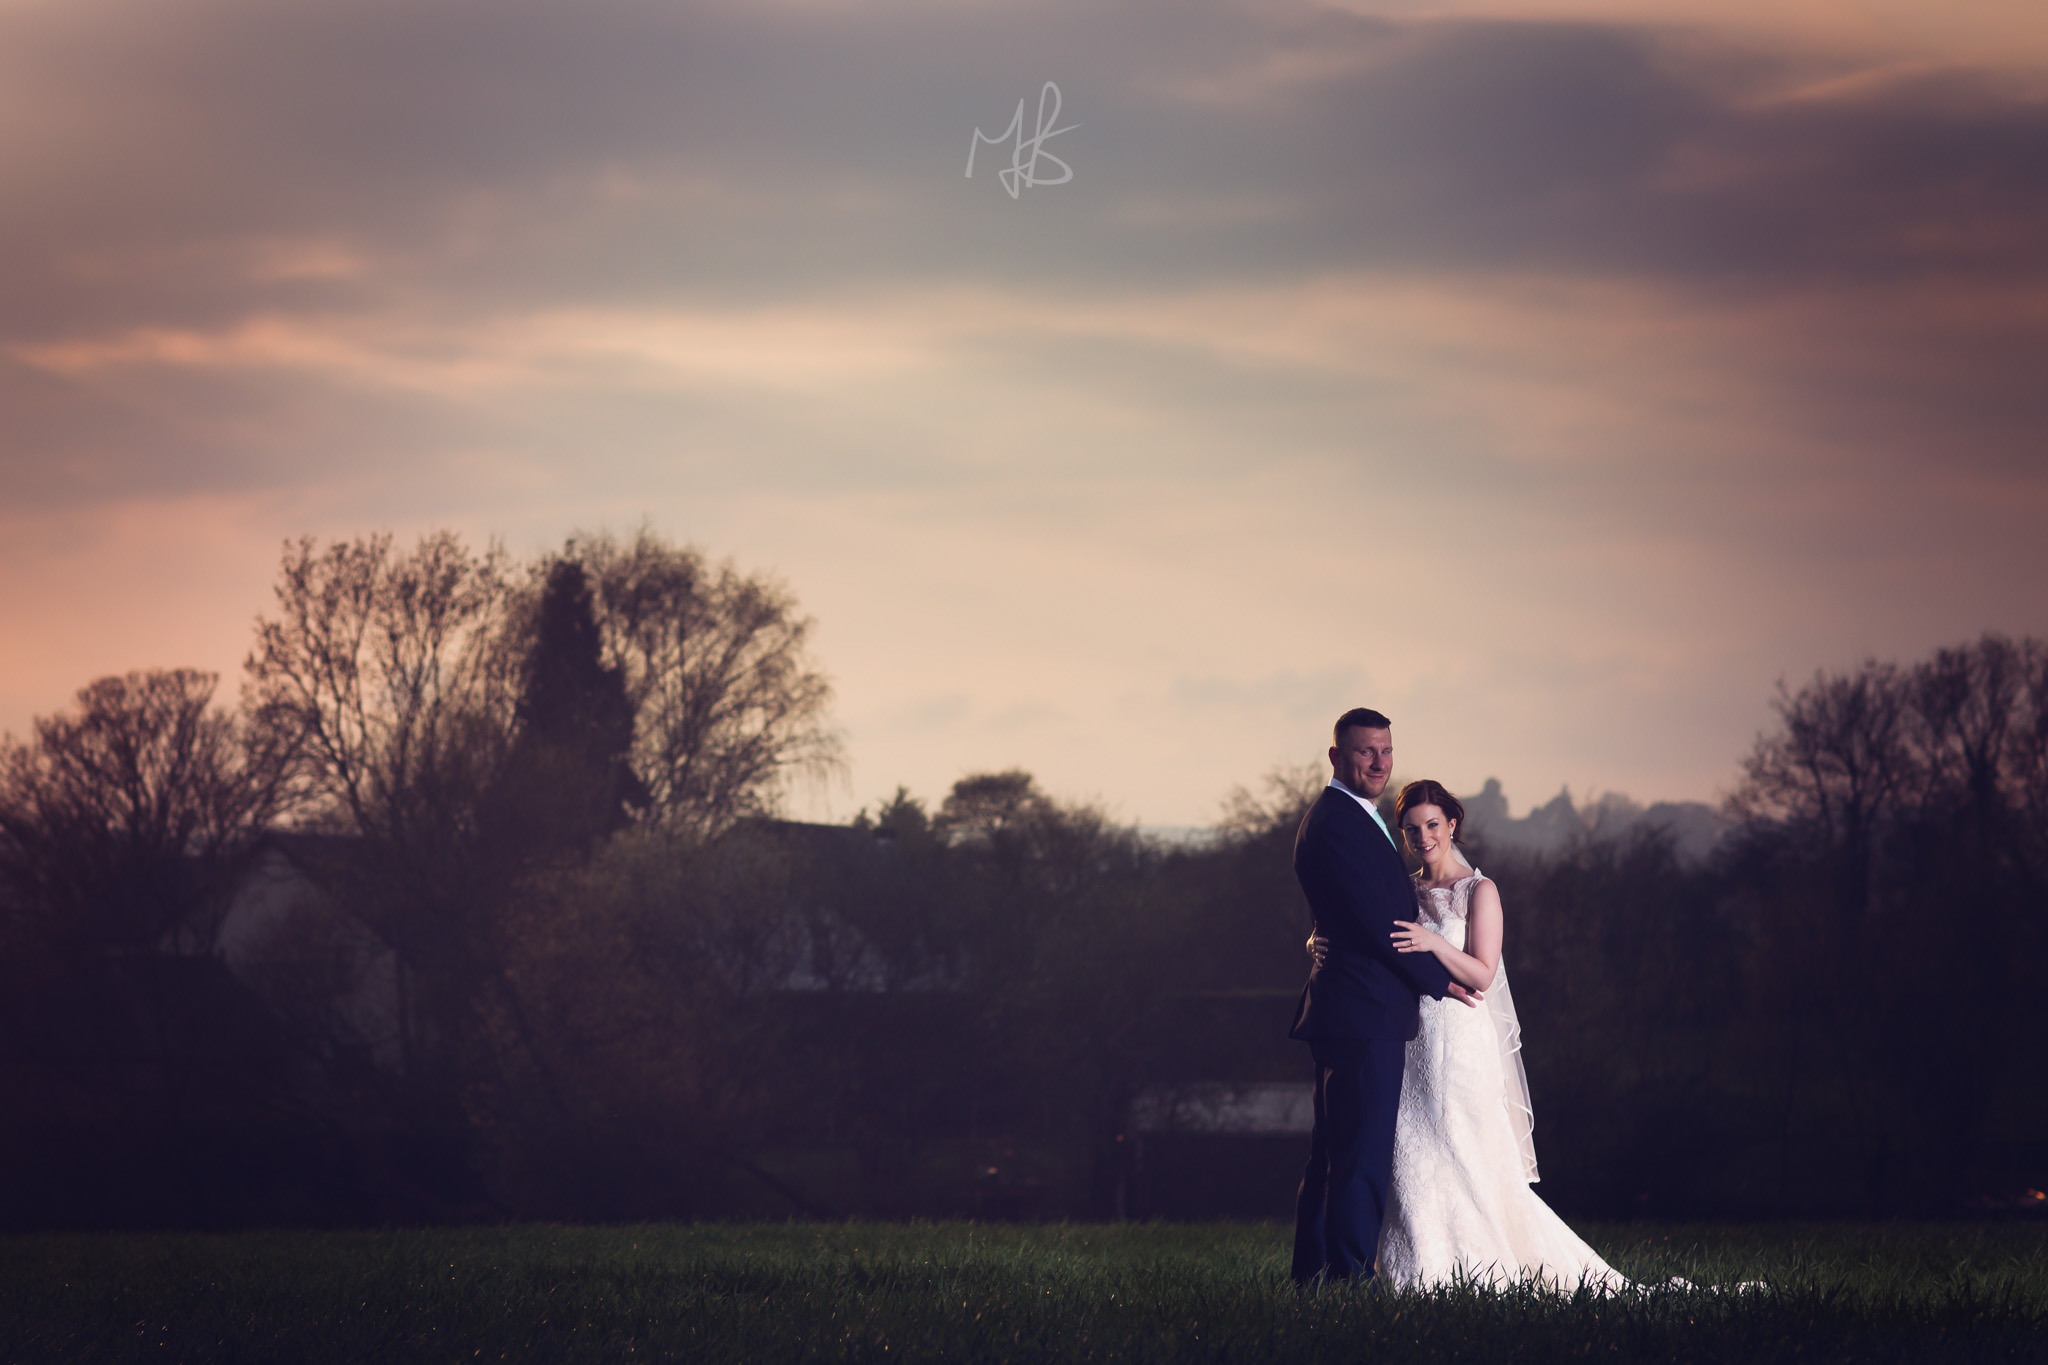 Bristol-Wedding-Photographer-Mark-Barnes-1.jpg